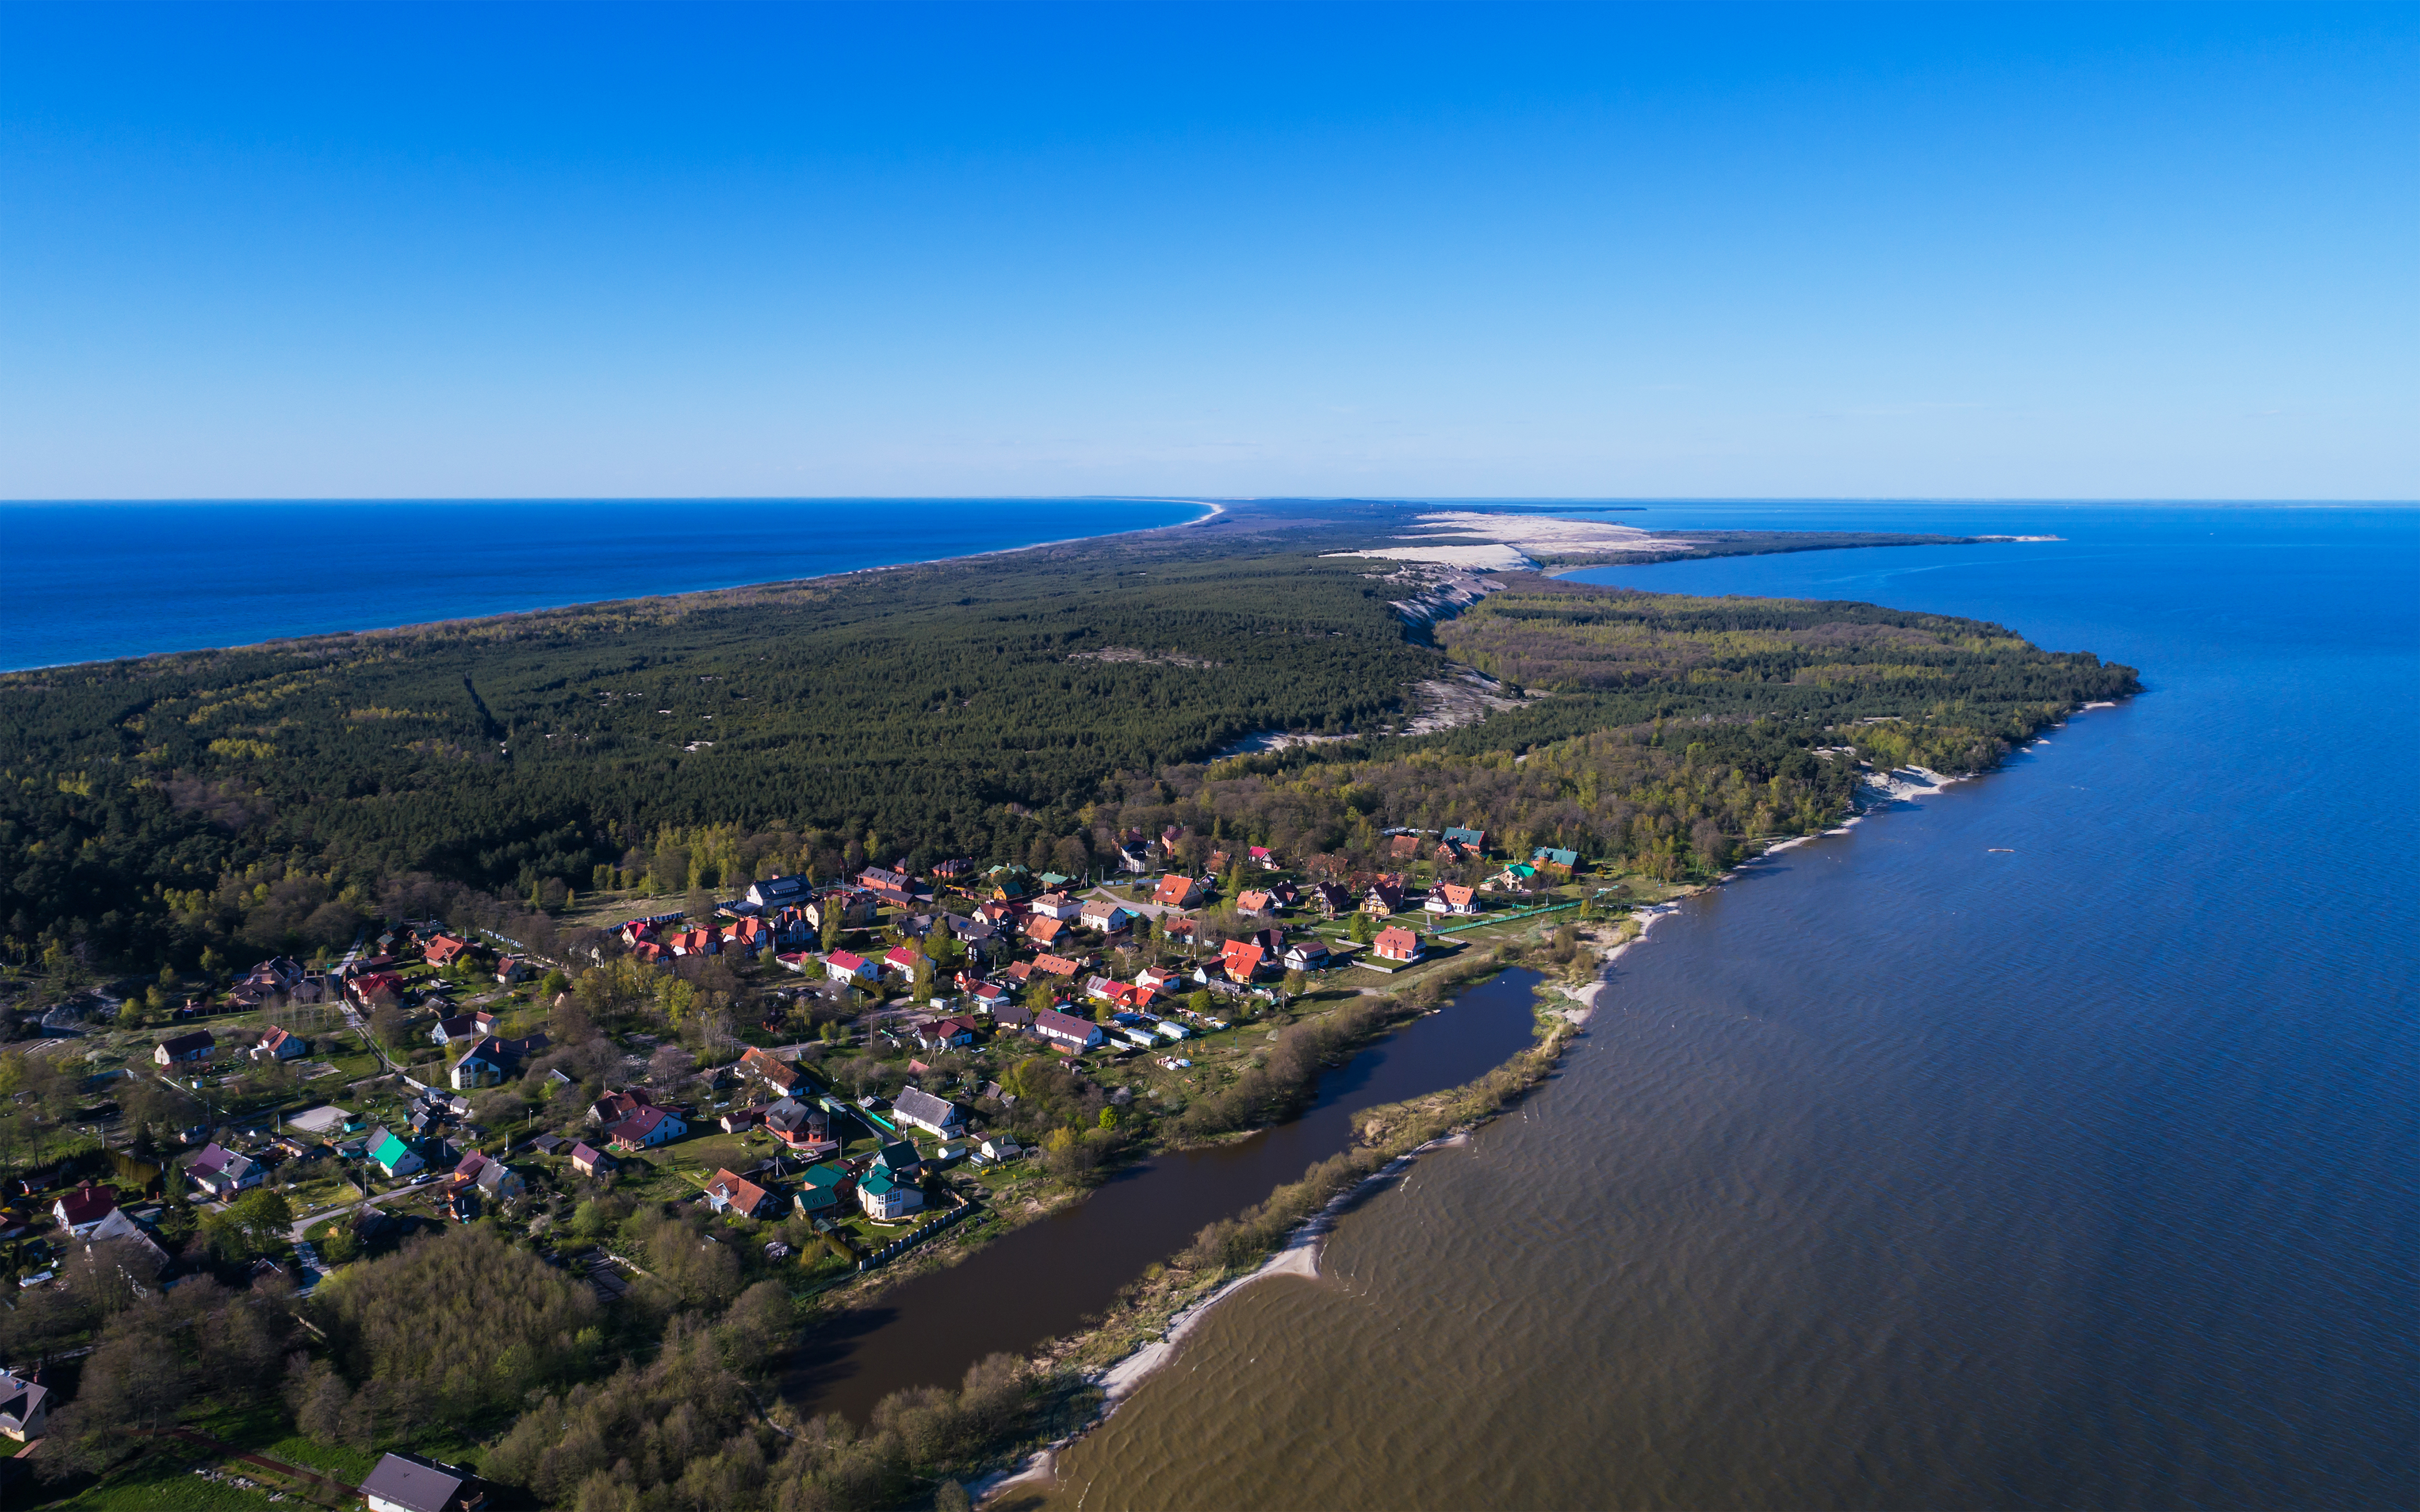 How to get from Kaliningrad to the Curonian Spit The option of car rental does not offer